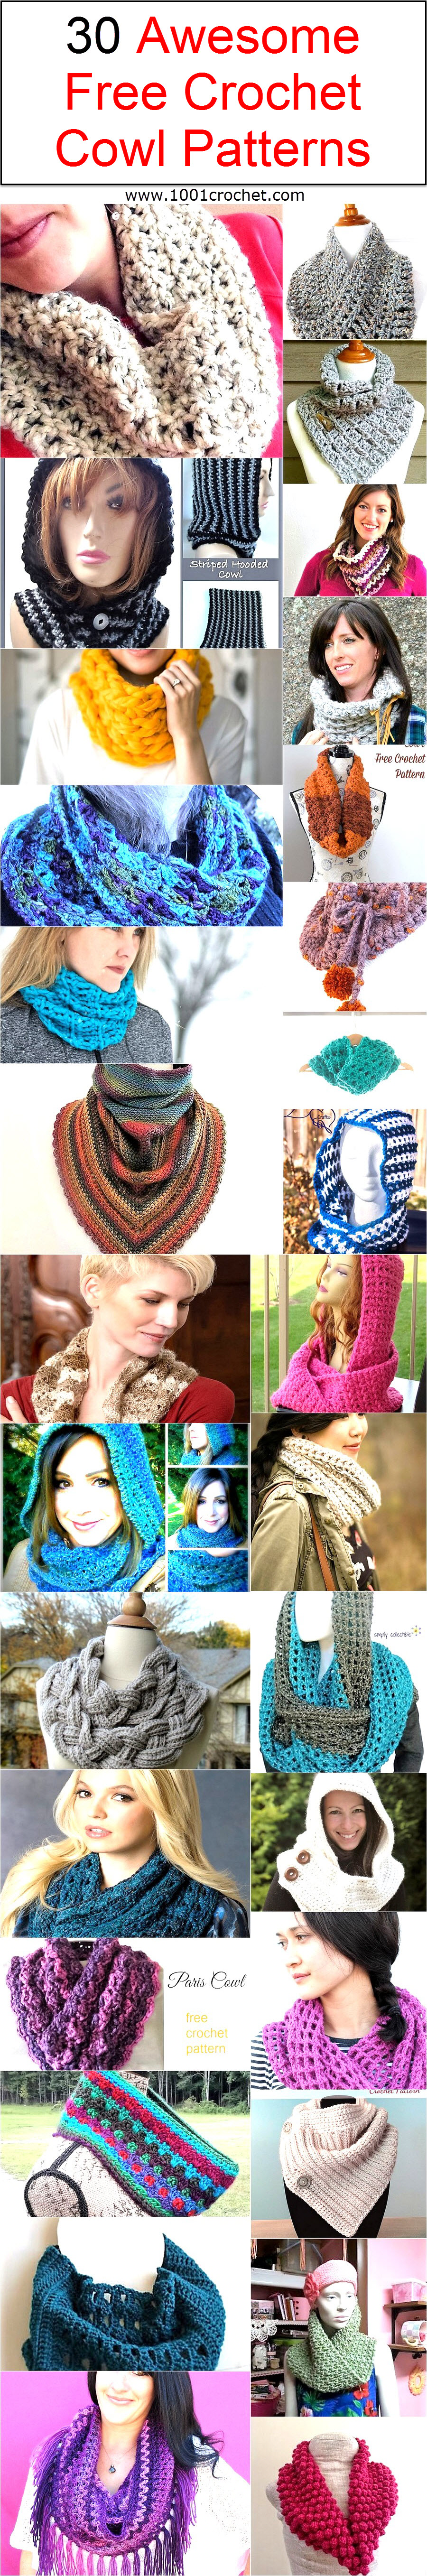 30-awesome-free-crochet-cowl-patterns